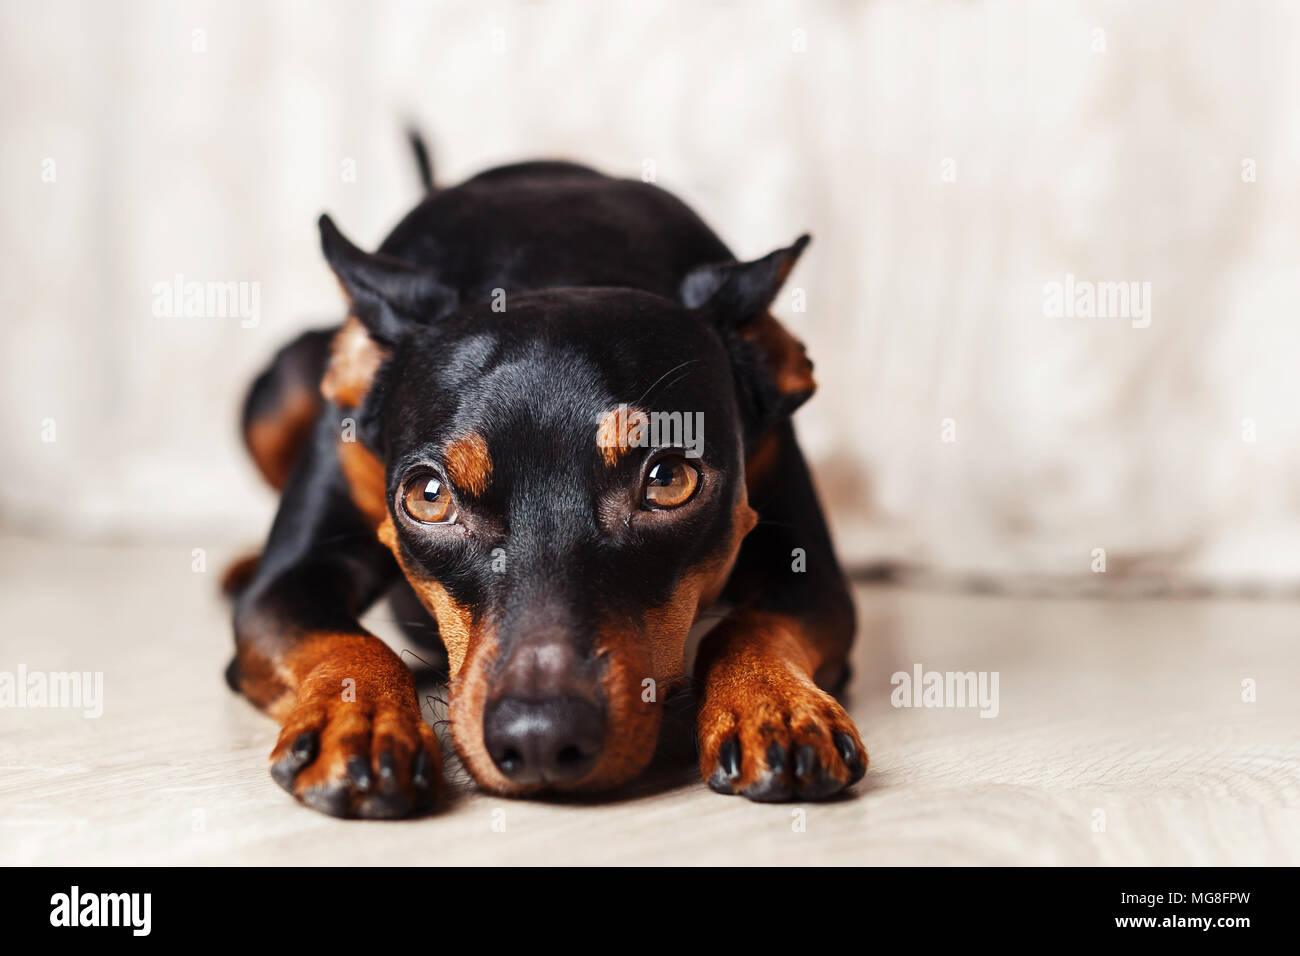 dwarf pincher lies on the floor on a white background, studio portrait of a dog - Stock Image